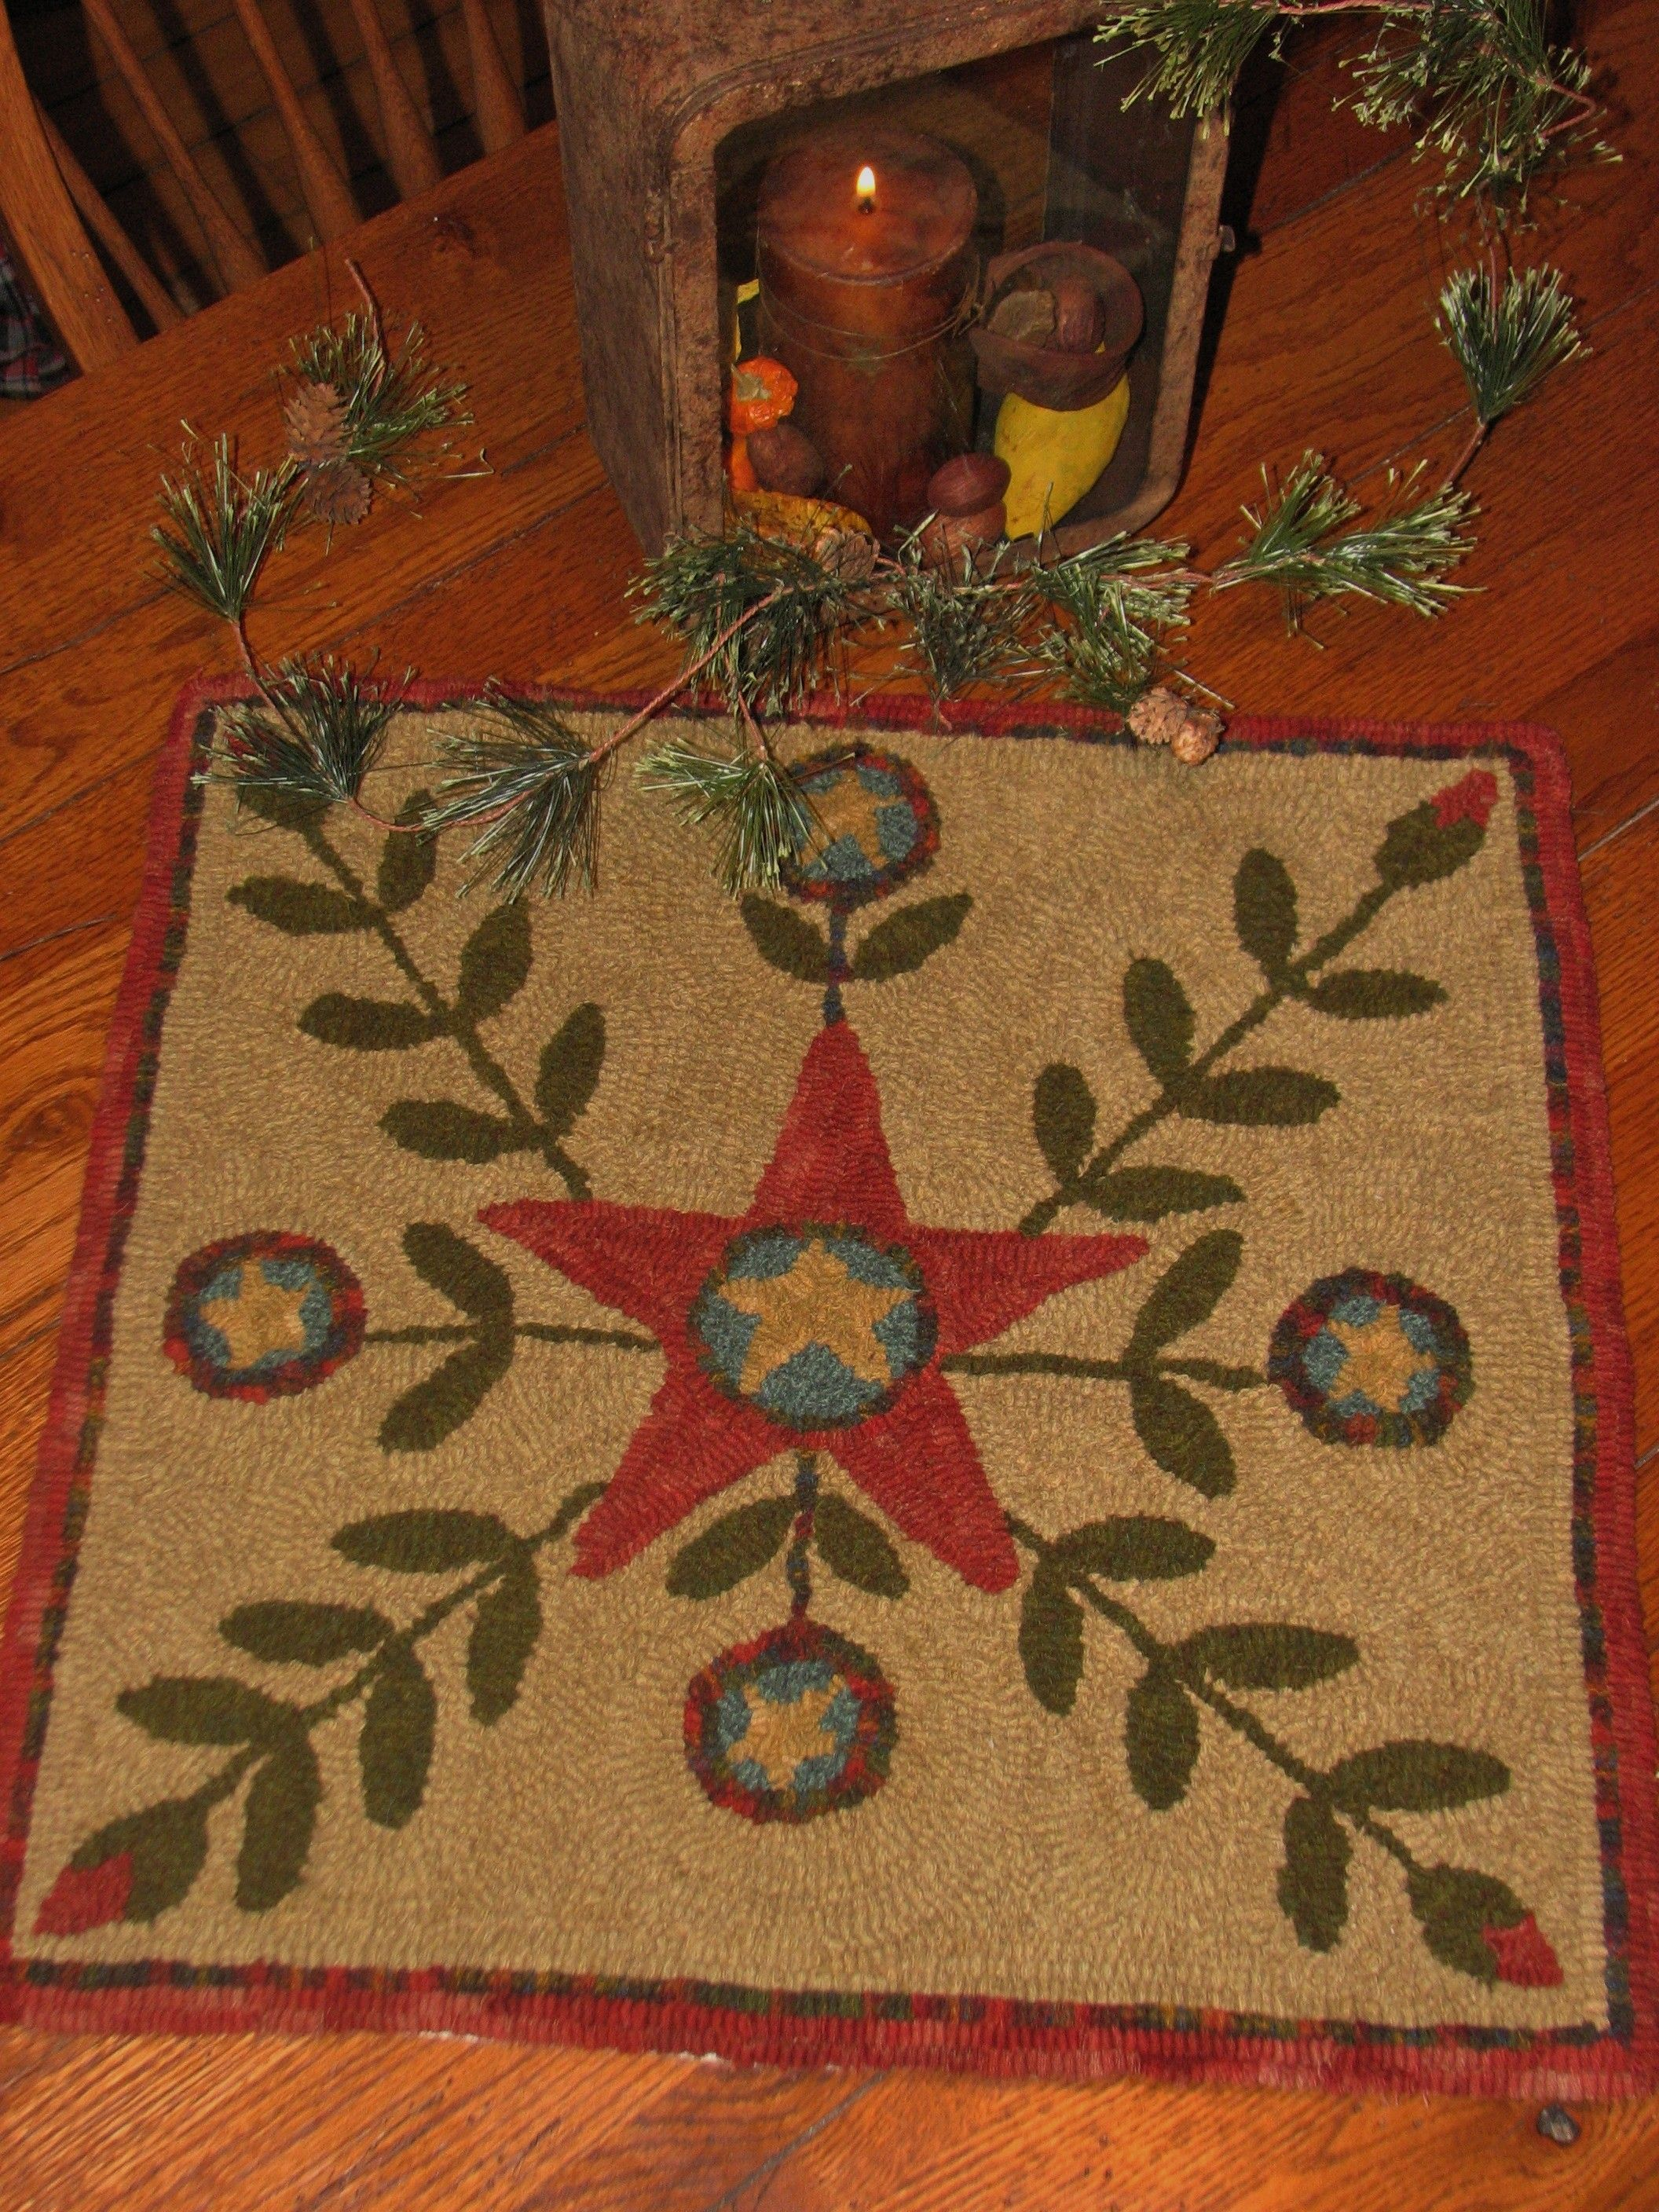 The Winter Star Primitive Hooked Rug Hooking Pattern